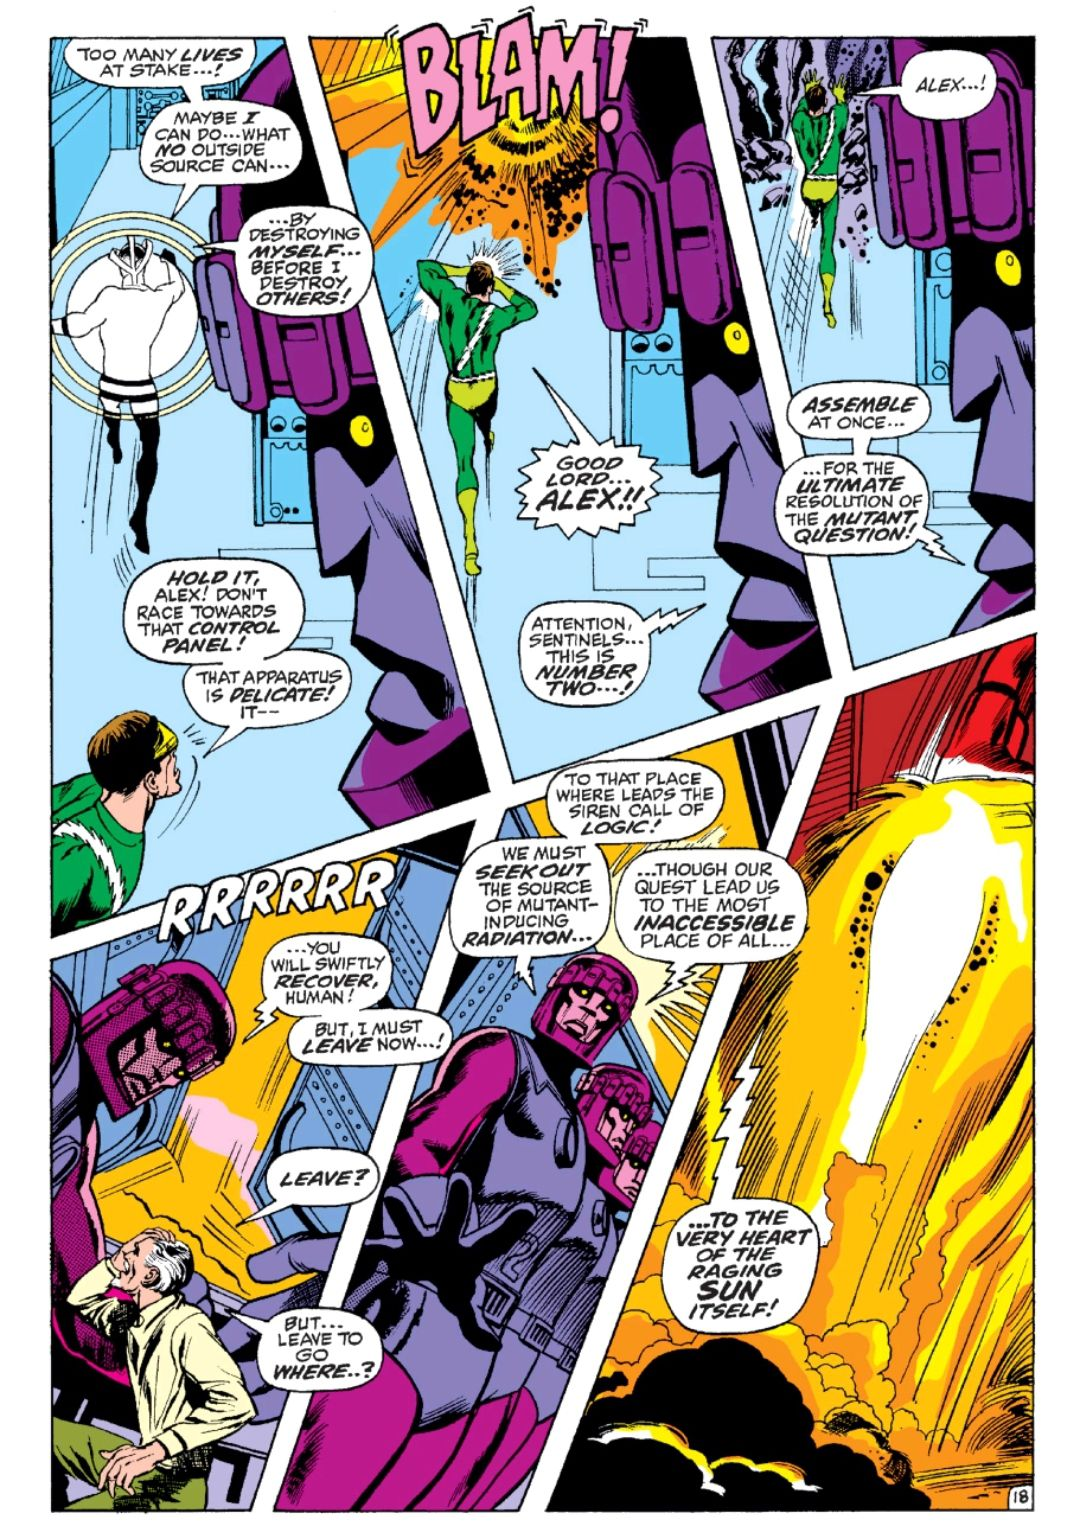 Sentinels decide that they must fight the sun, in X-Men #59, Marvel Comics (1969).